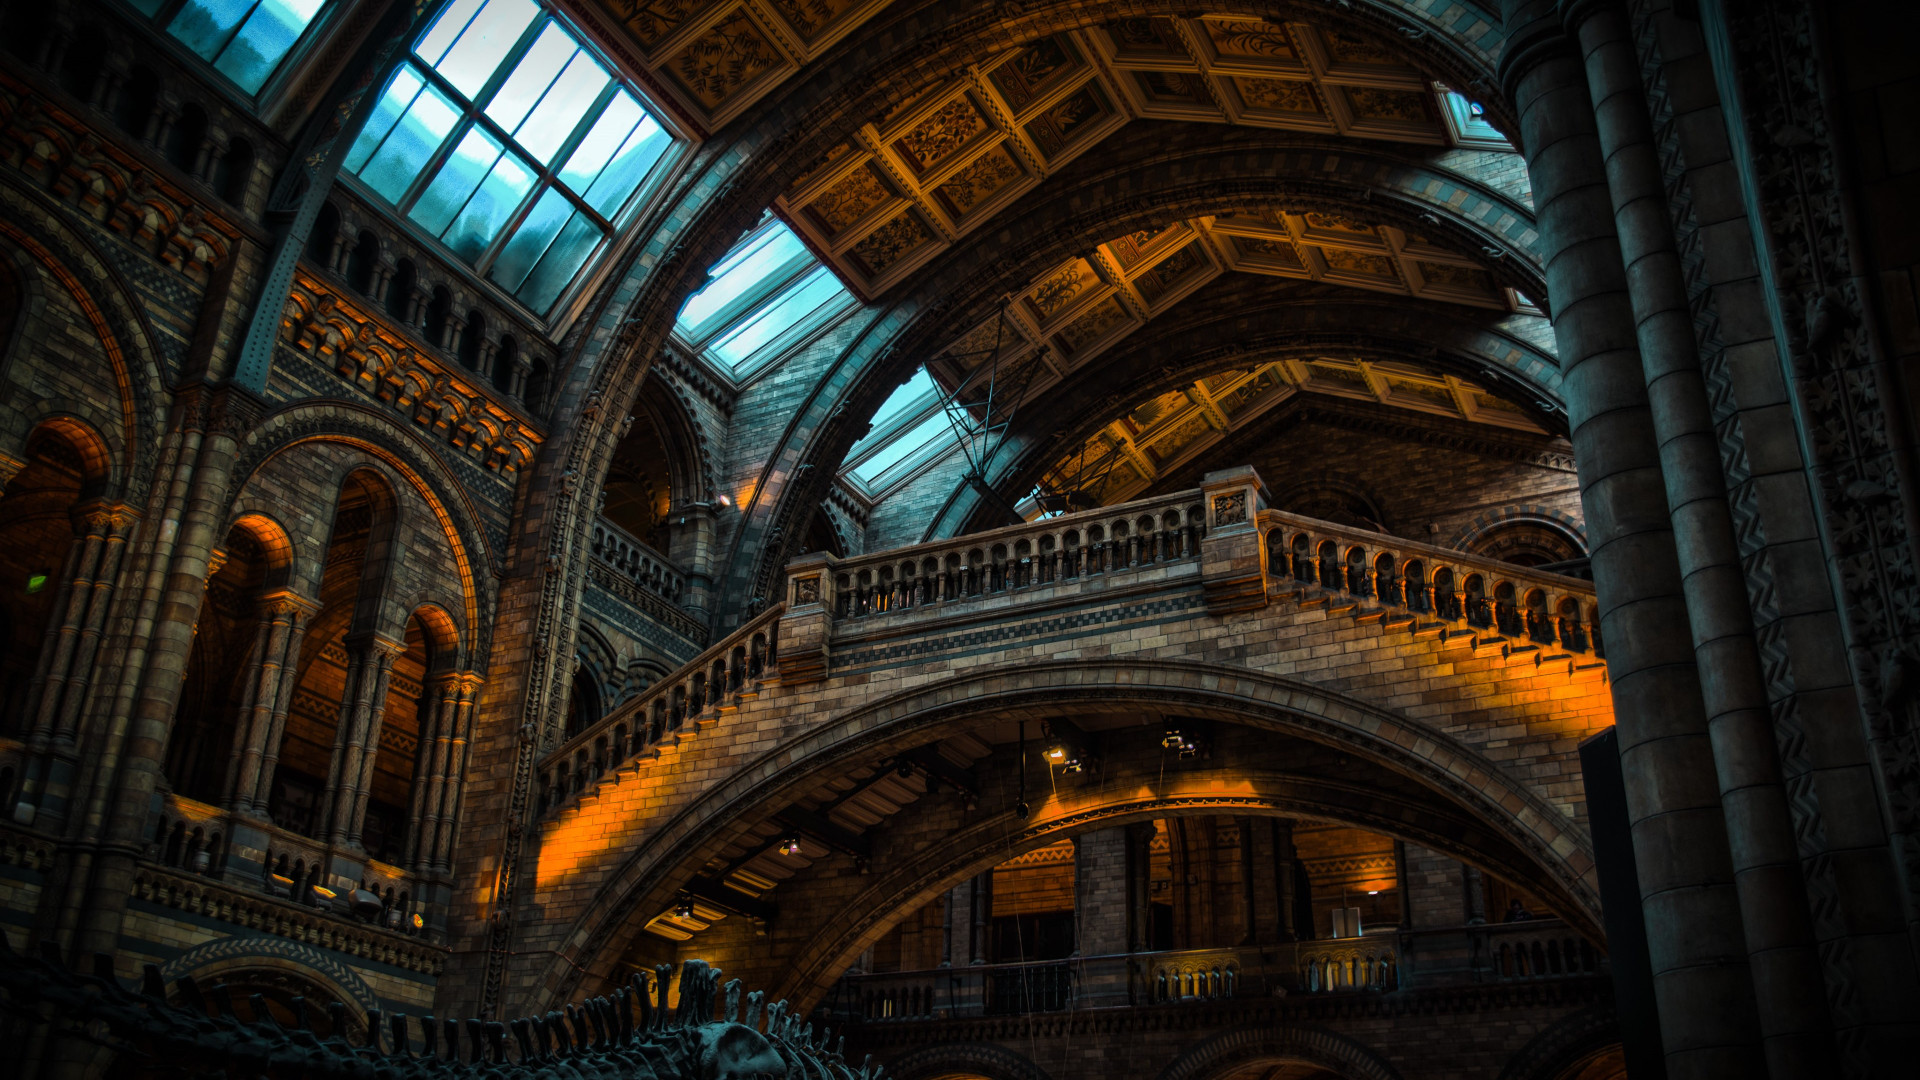 Inside of Natural History Museum from London | 1920x1080 wallpaper